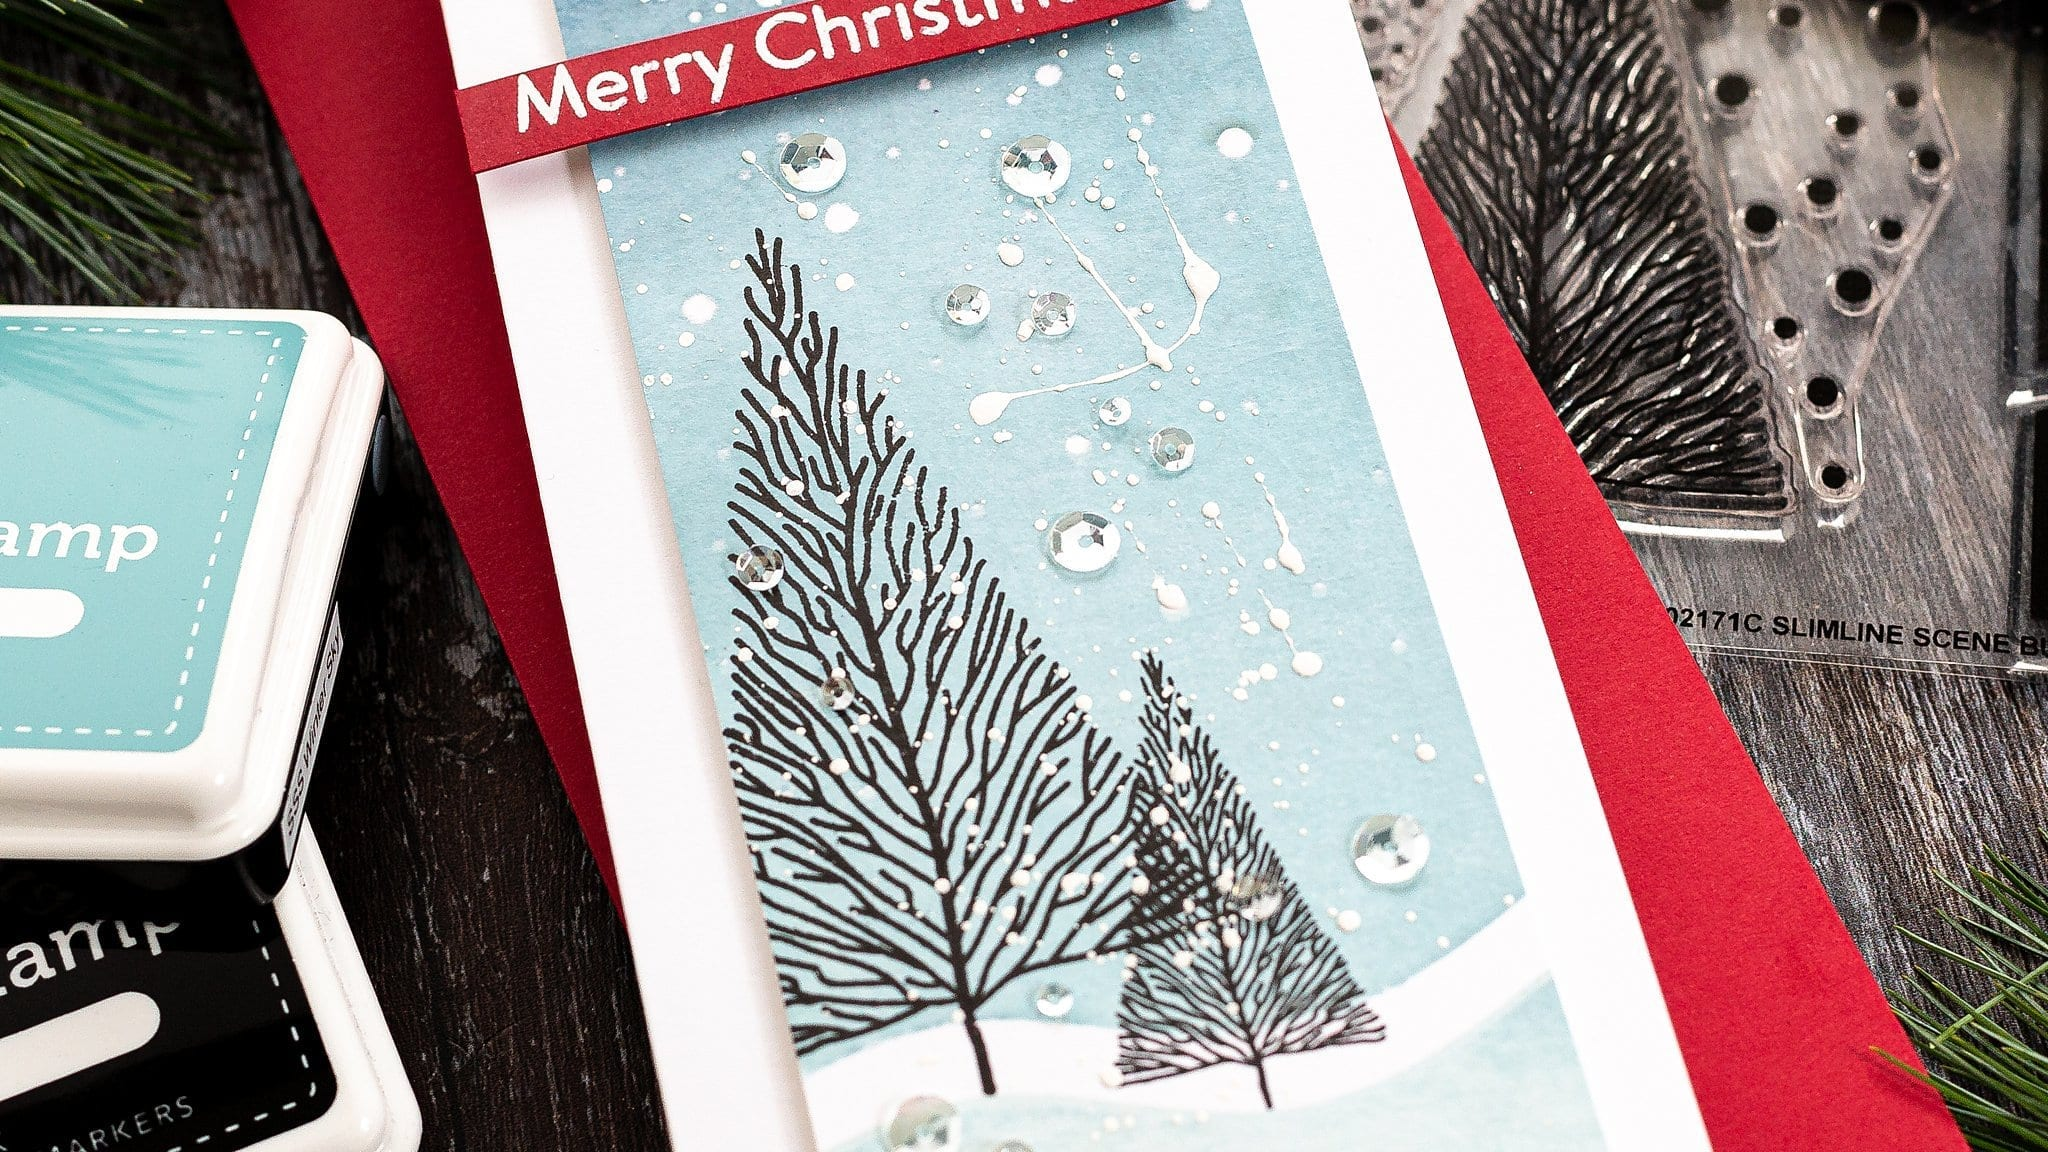 slimline Christmas handmade card tutorial by Debby Hughes using supplies from Simon Says Stamp #stamping #homemade #holiday